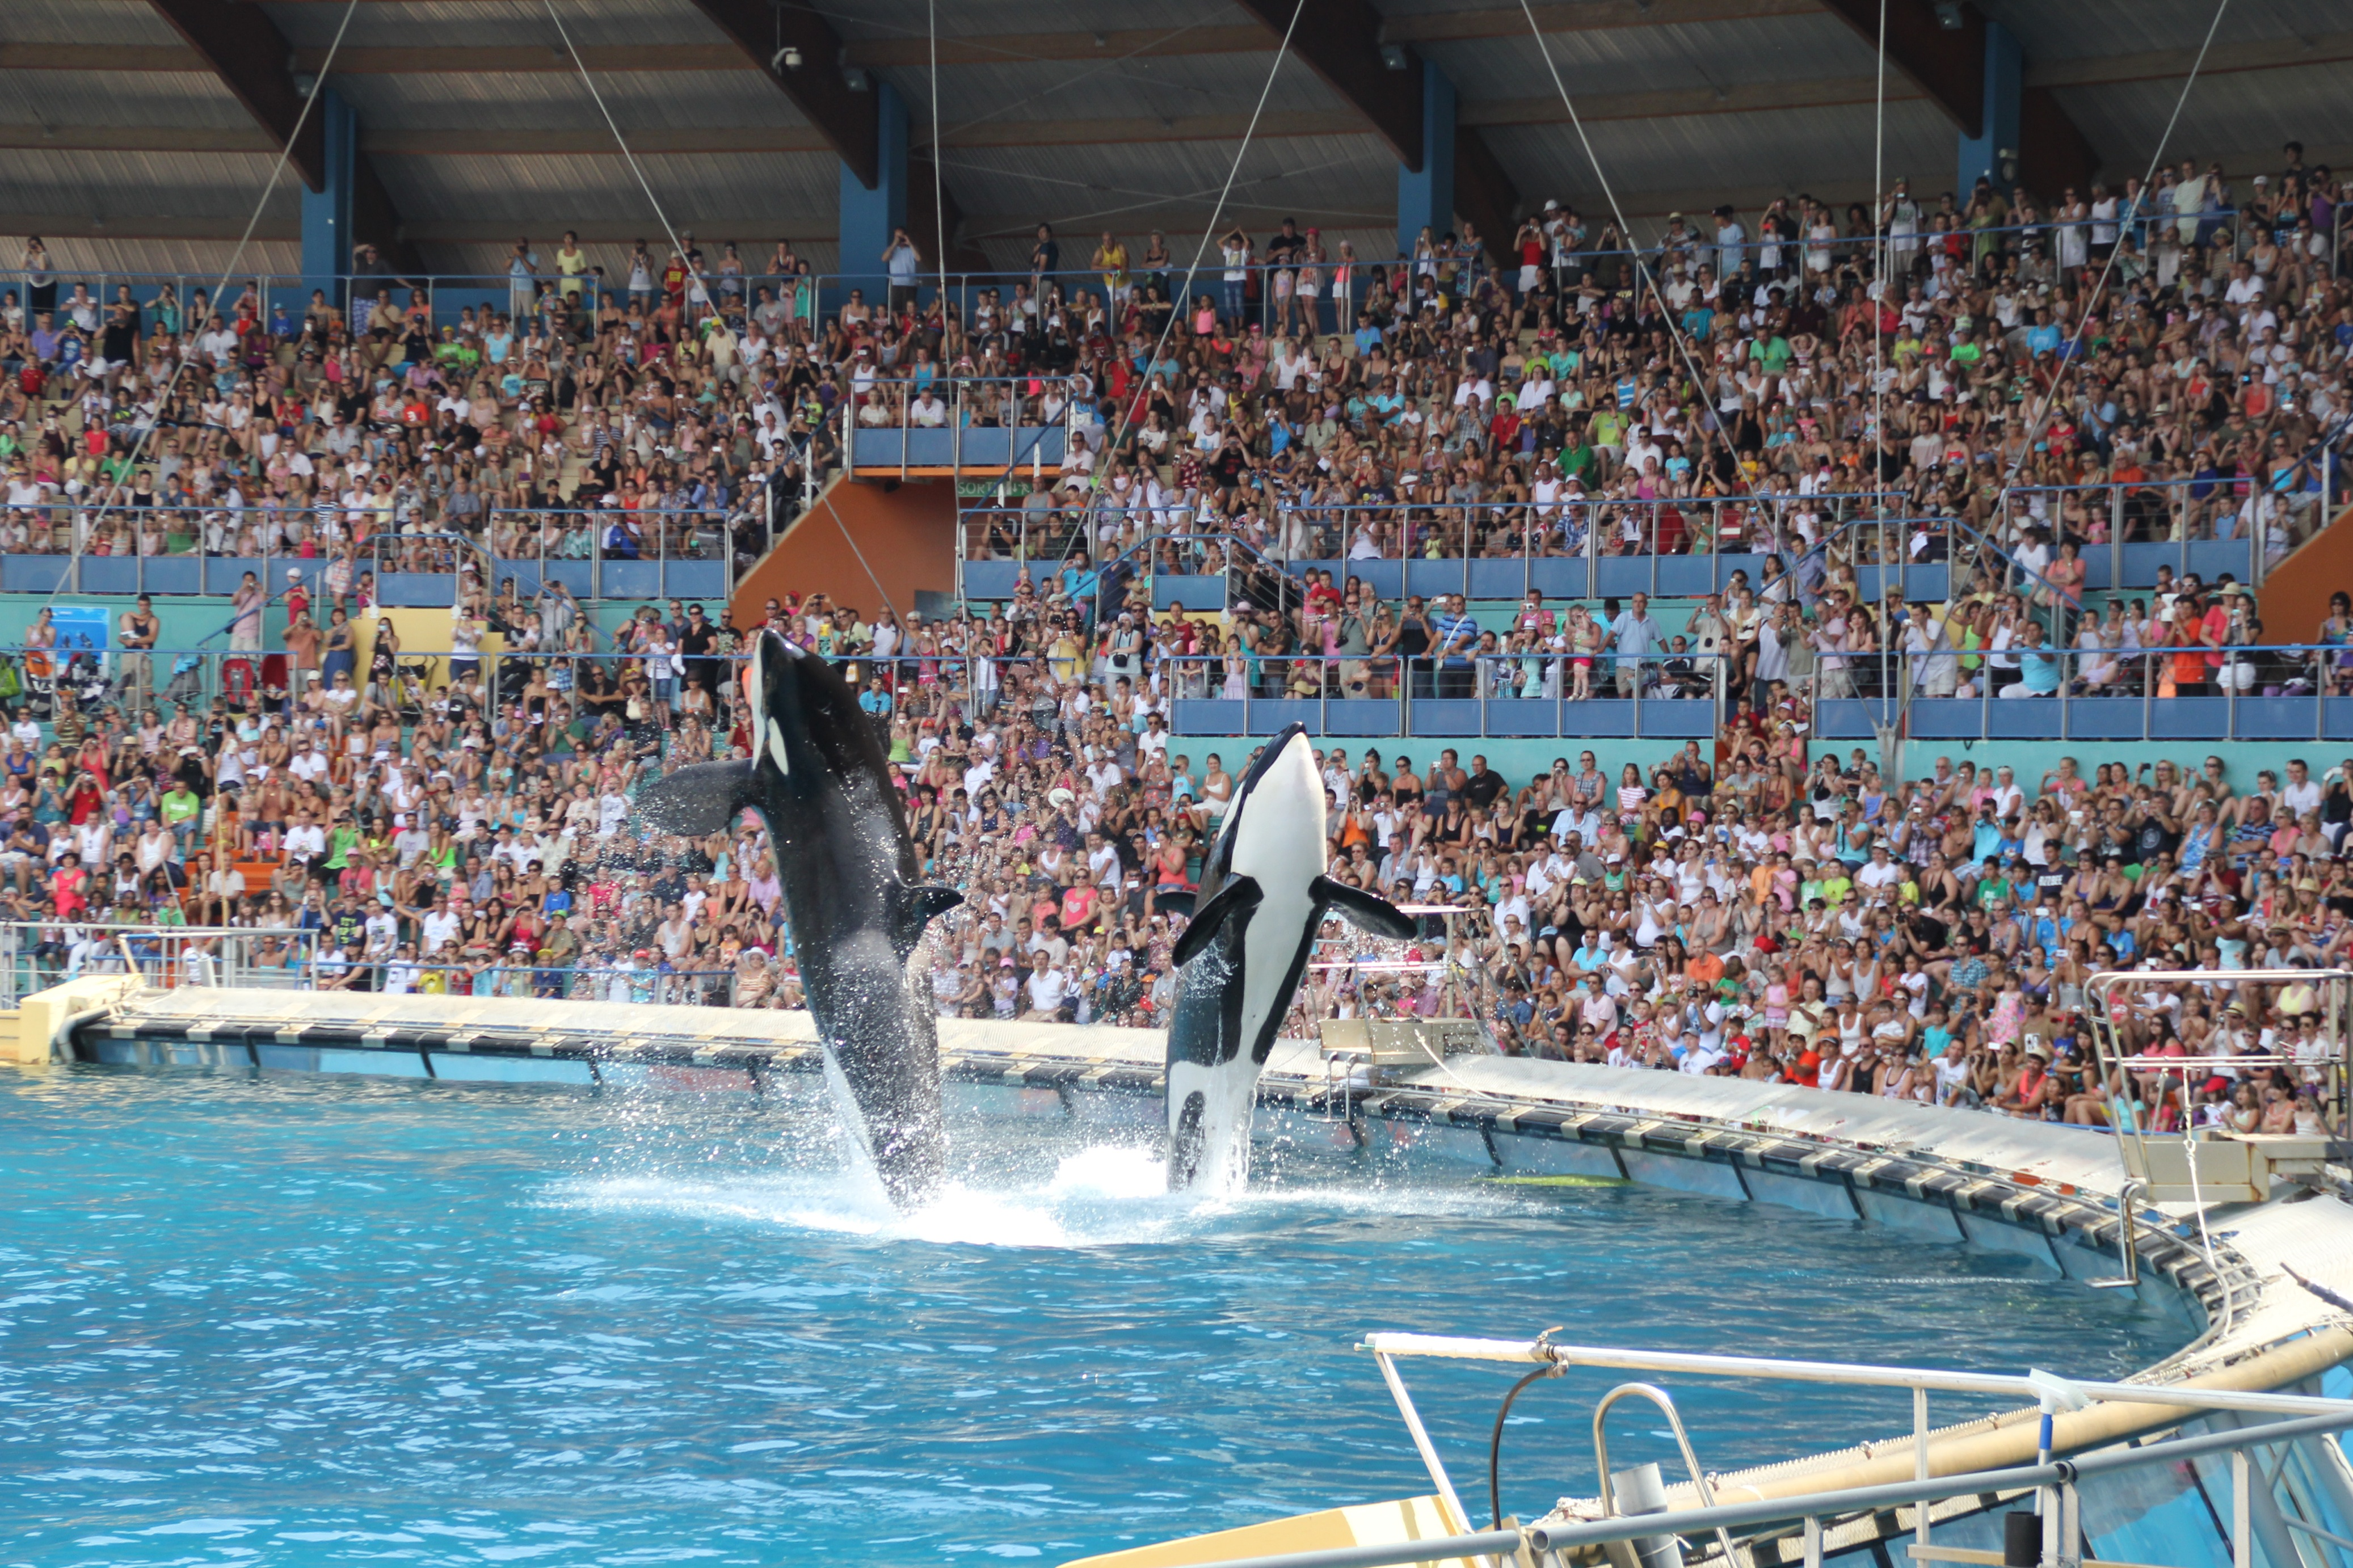 File:Jumping Orcas at Marineland, Antibes, France.jpg ...